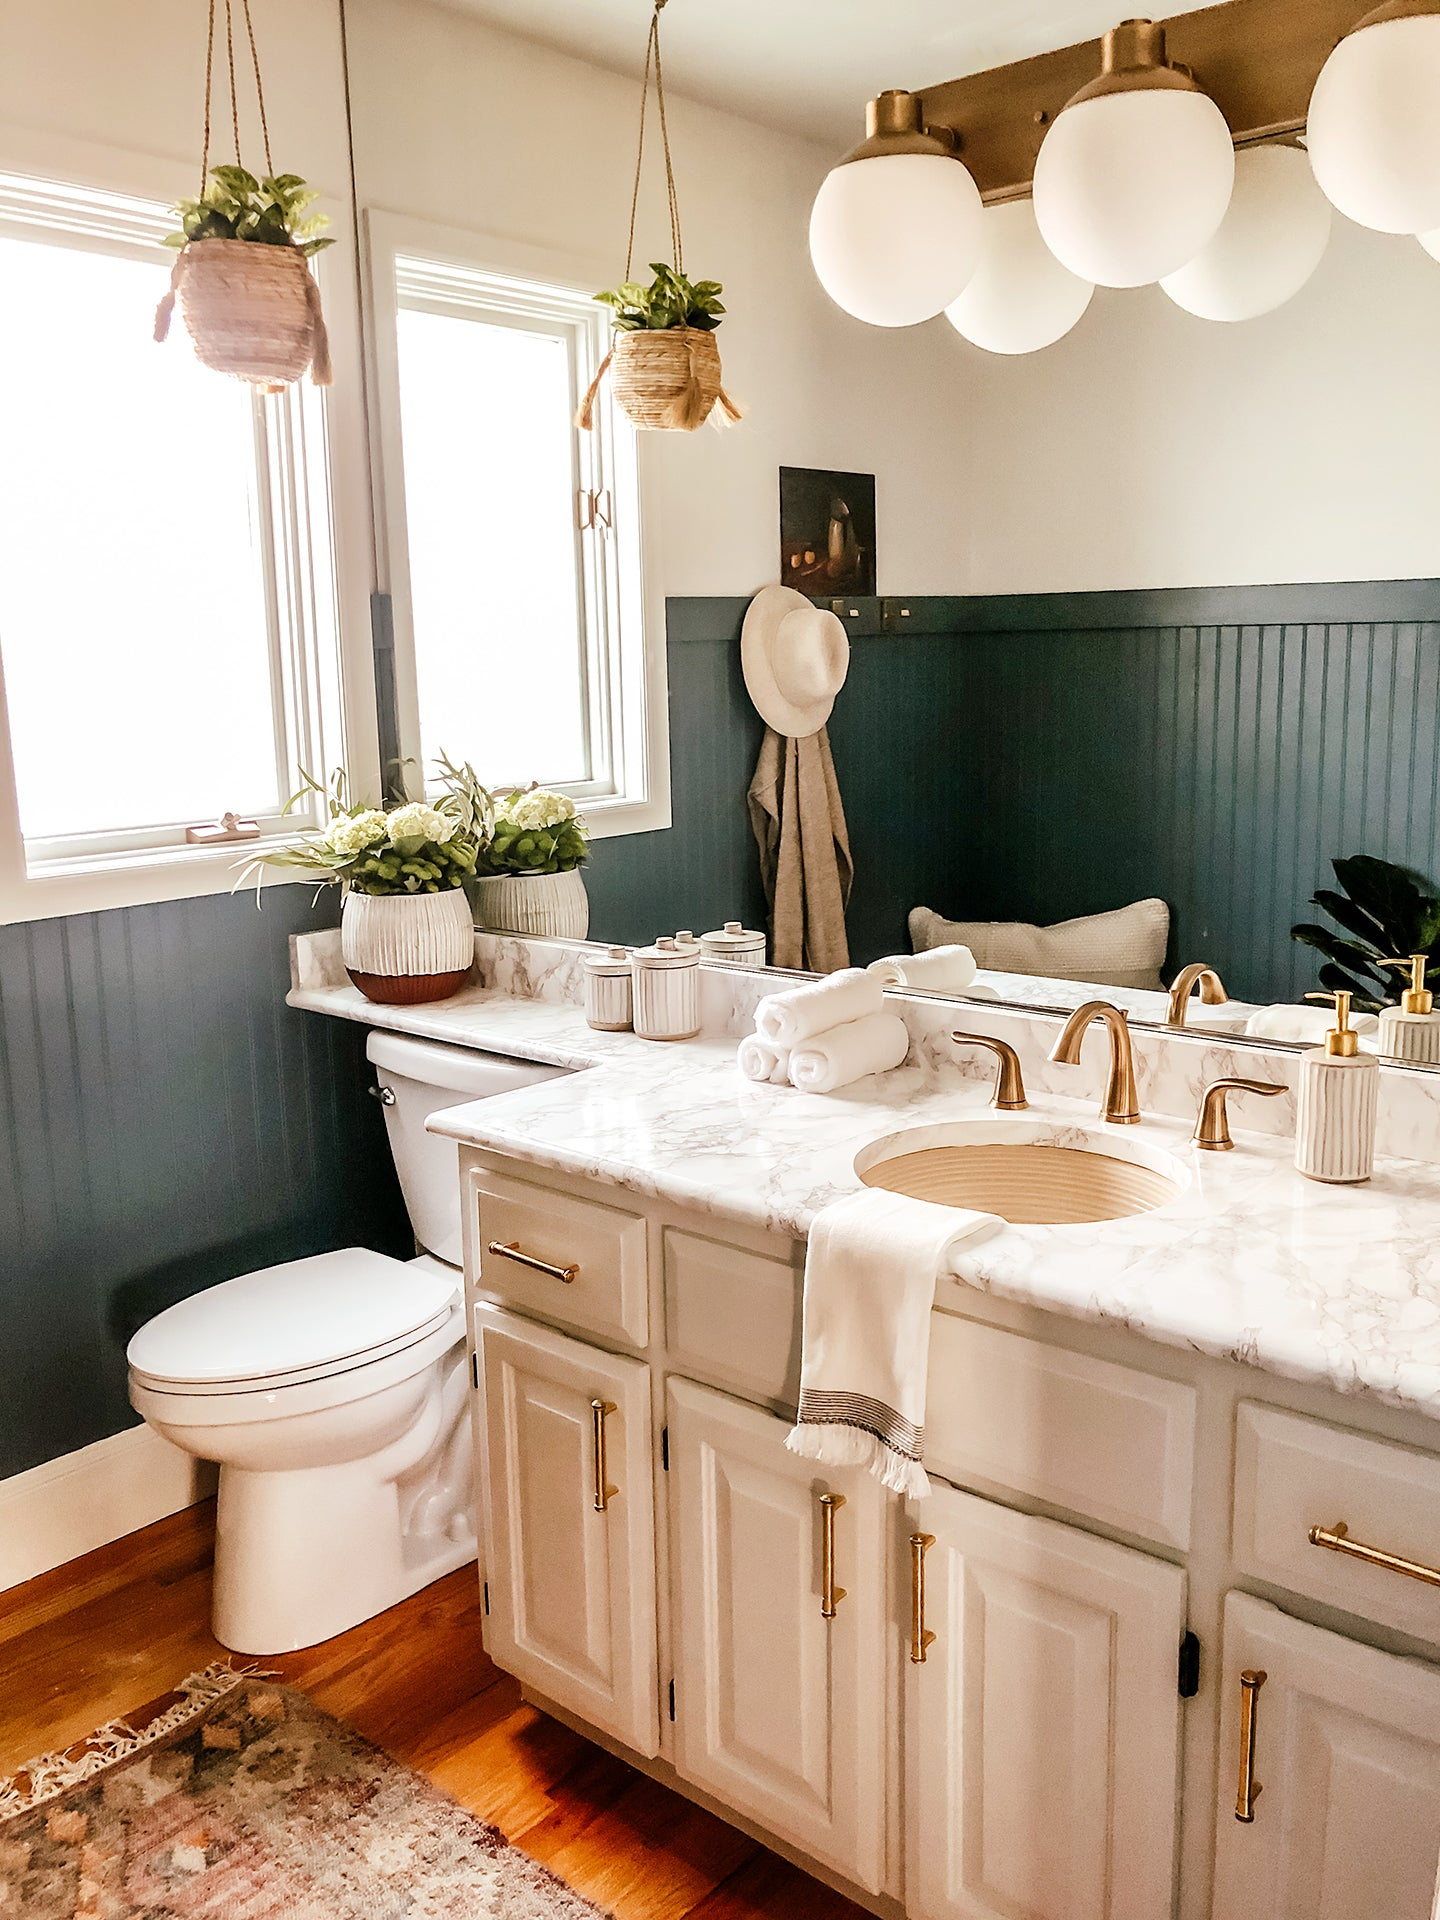 Can You Spot the 2 DIYs in This Bathroom Transformation?